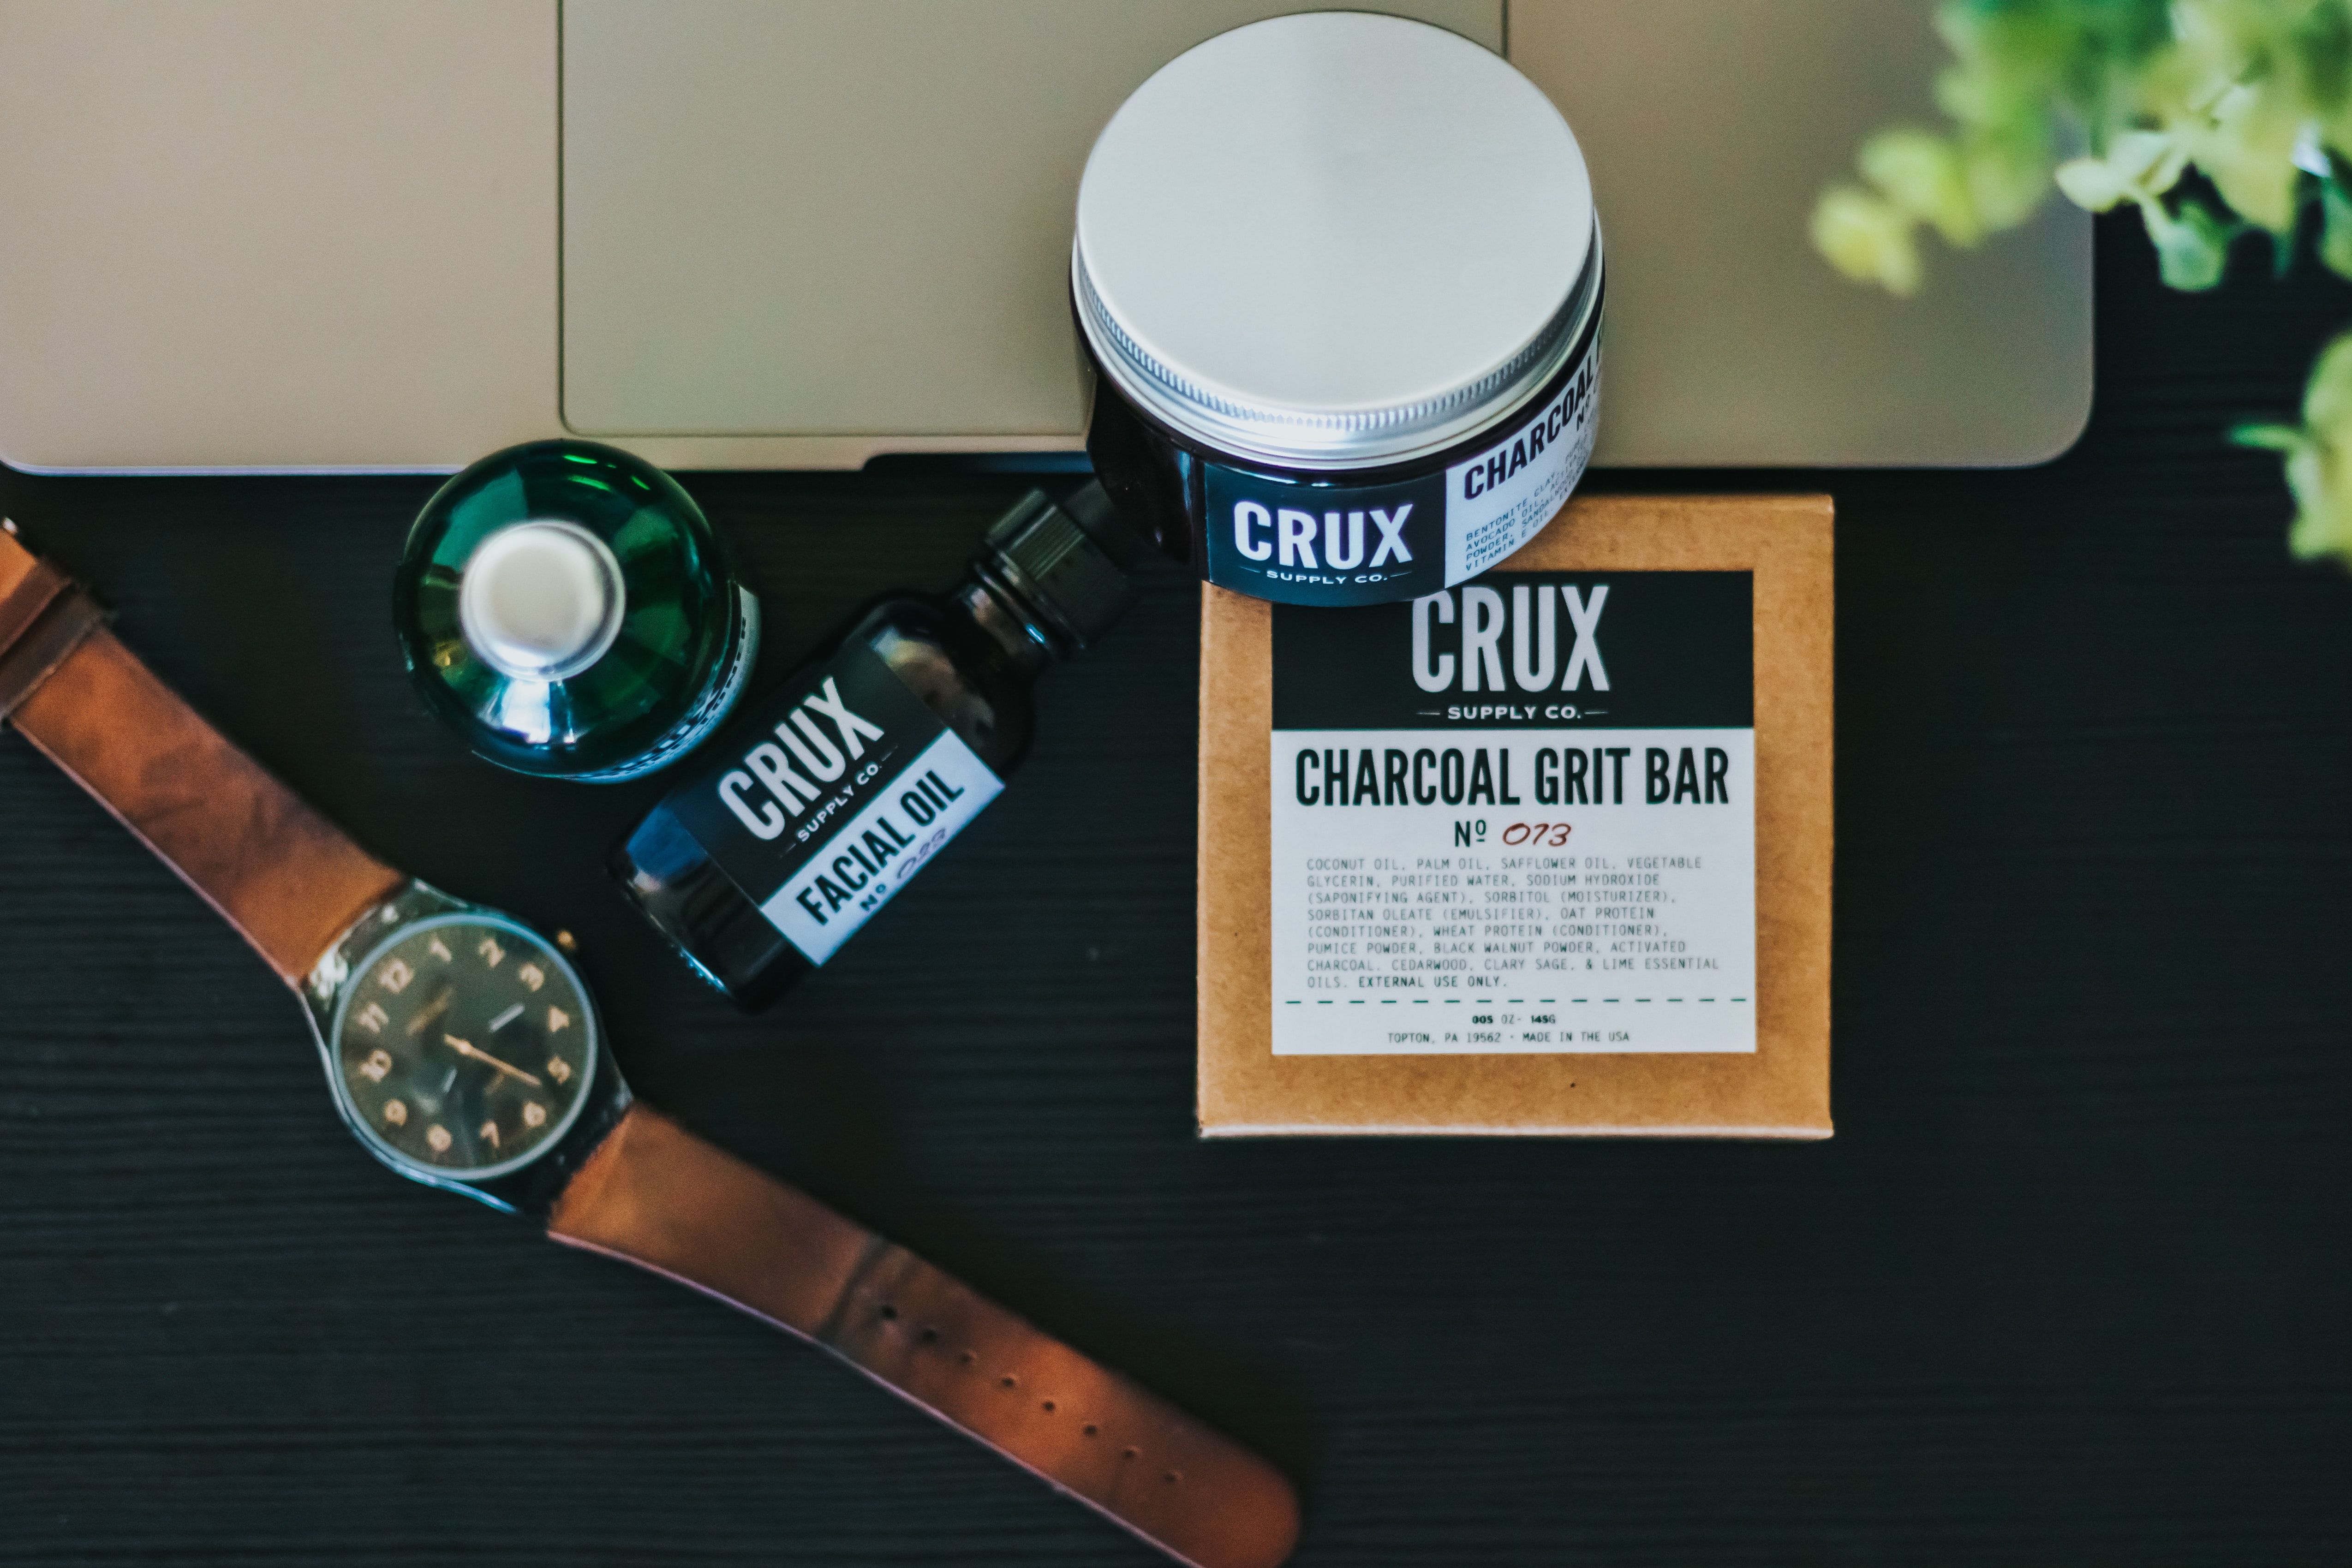 Crux charcoal grit bar